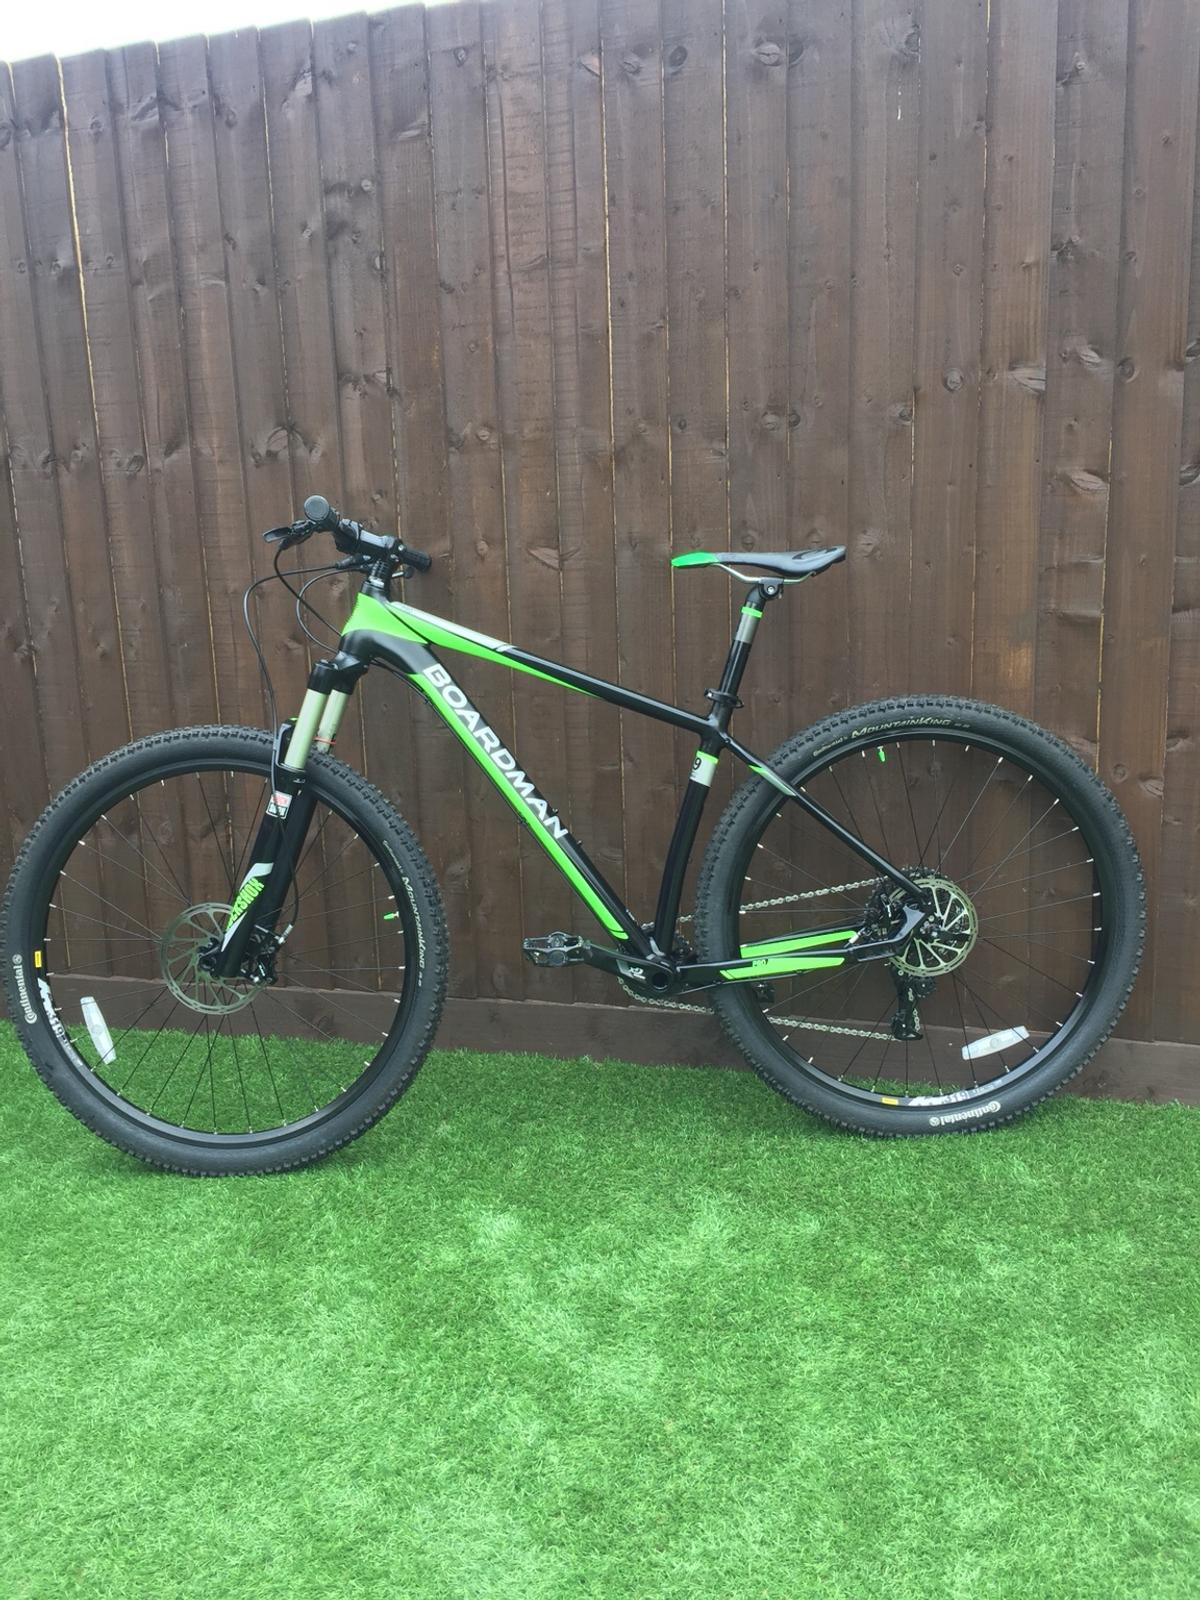 263e49cfd65 Boardman pro 29er mountain bike in Broughton for £550.00 for sale ...